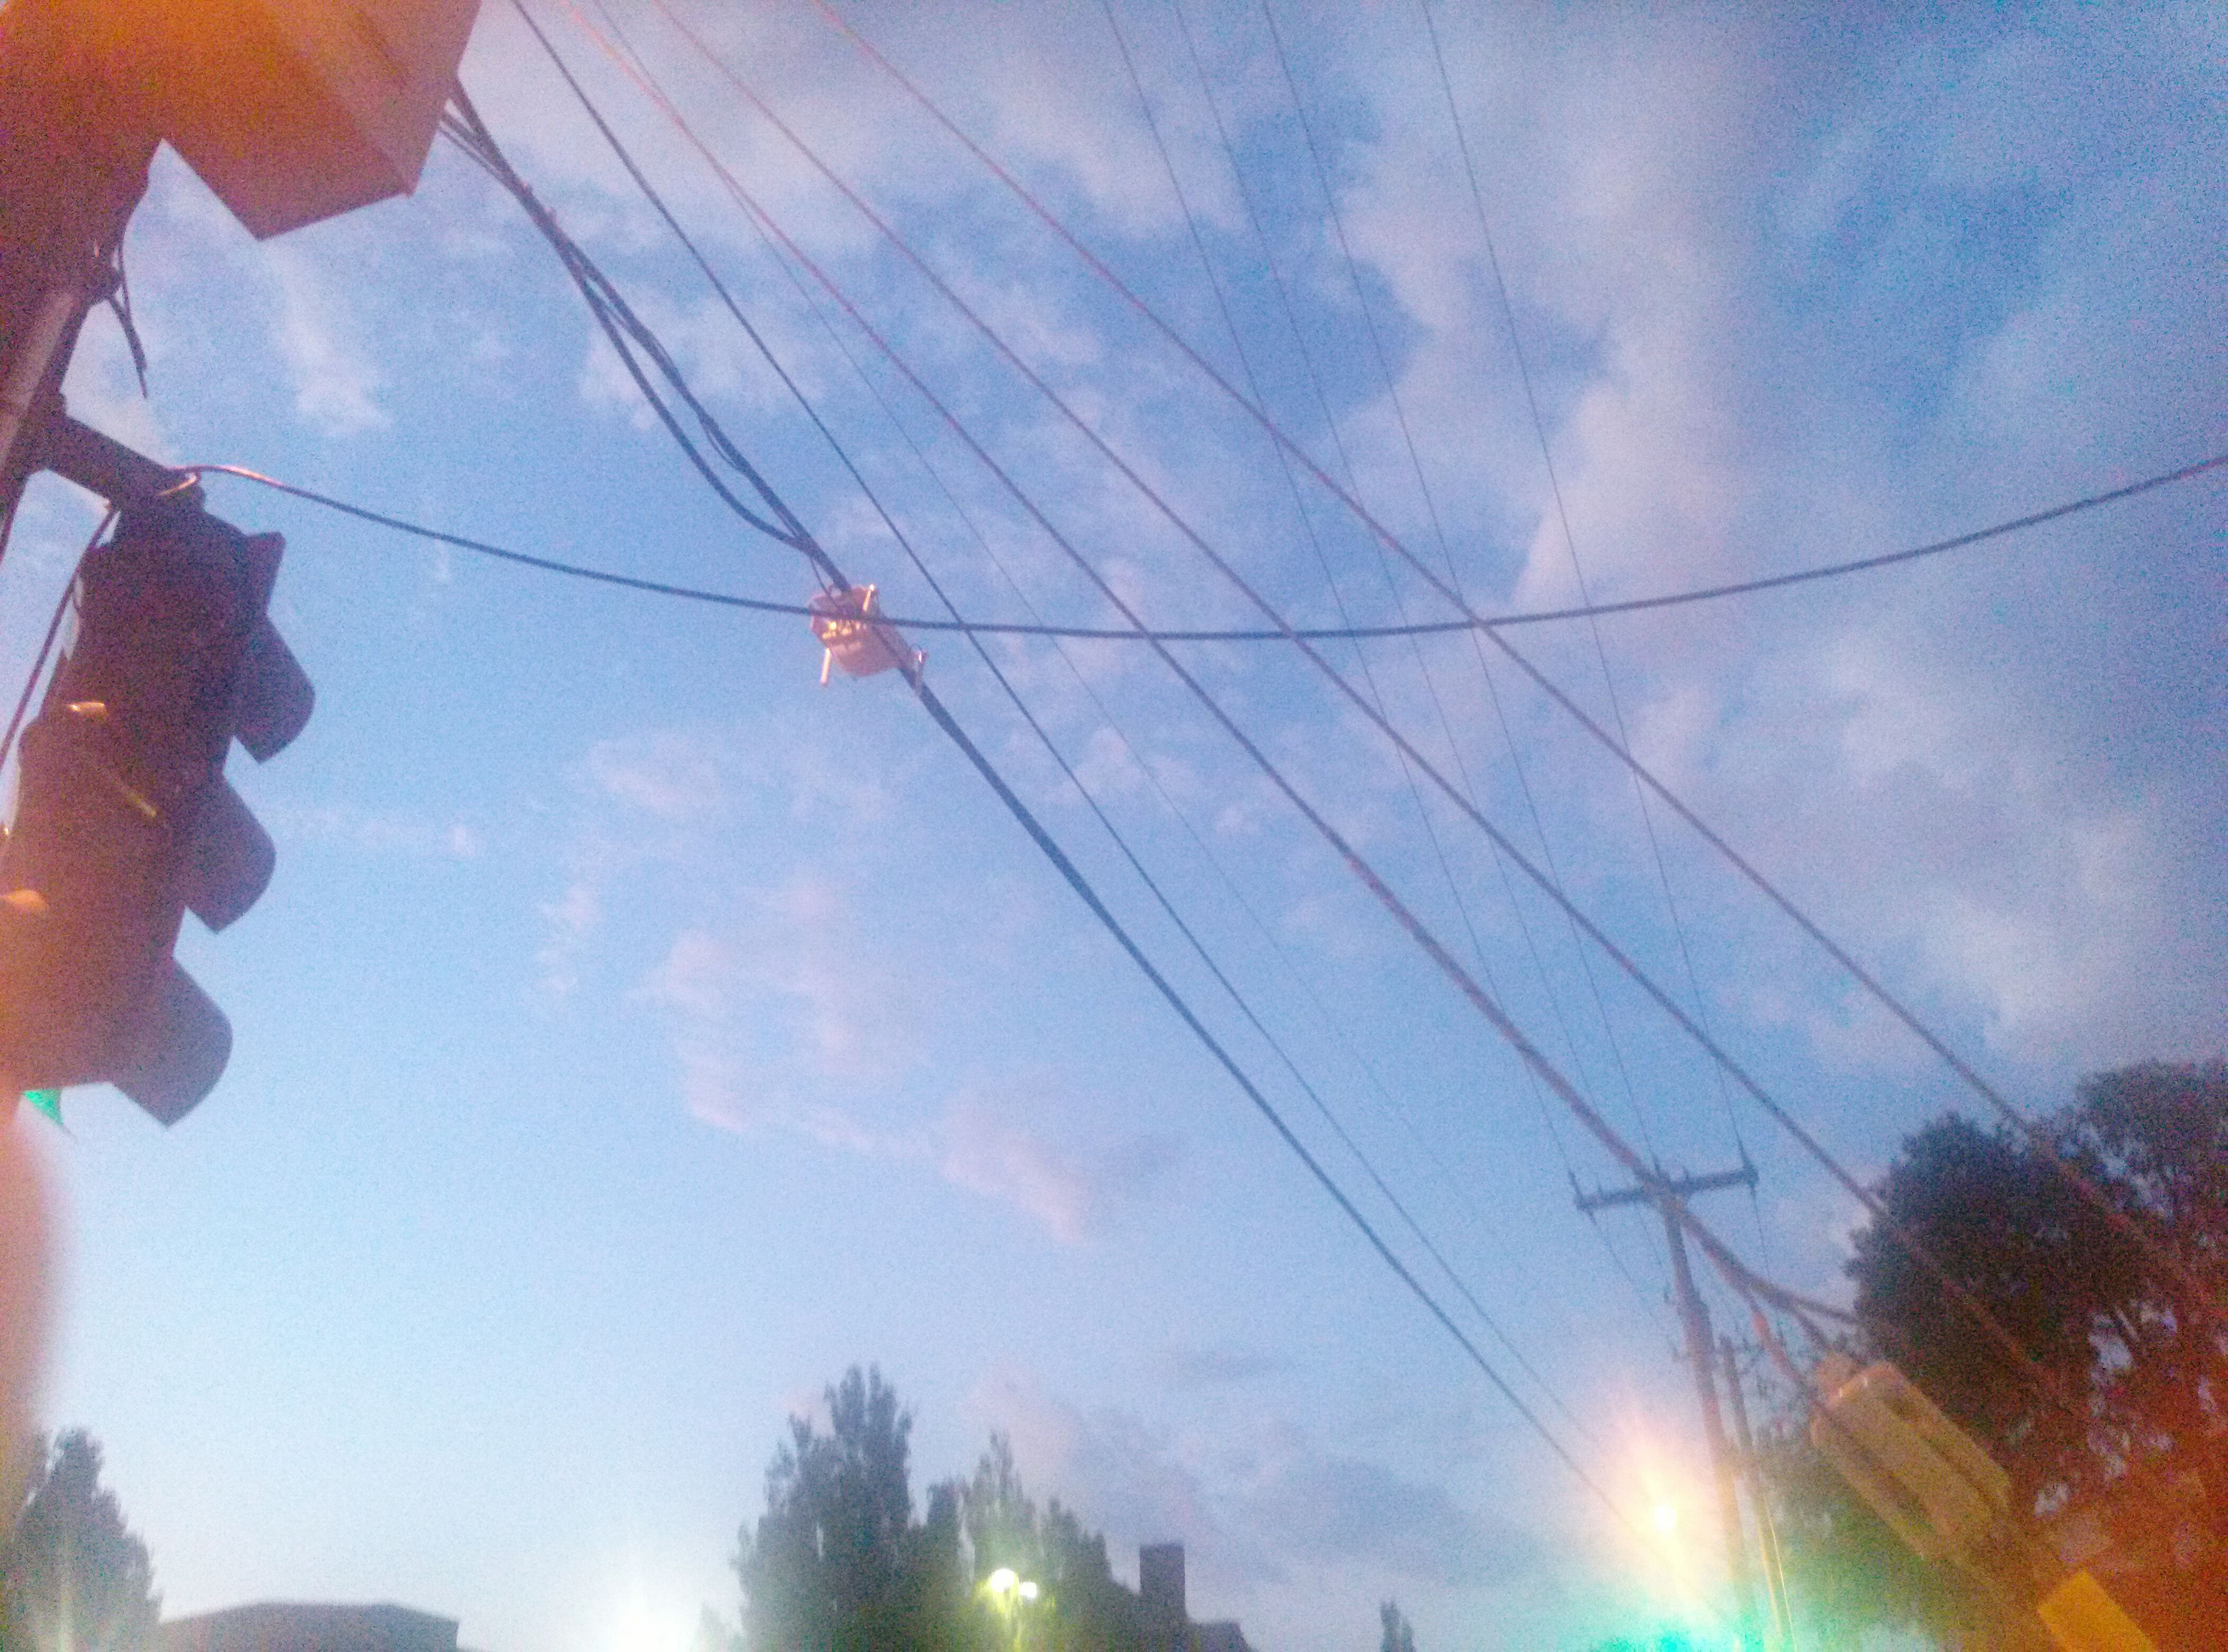 low angle view, sky, power line, cloud - sky, cable, electricity, electricity pylon, silhouette, connection, power supply, outdoors, cloud, cloudy, nature, sunlight, street light, sun, sunbeam, blue, day